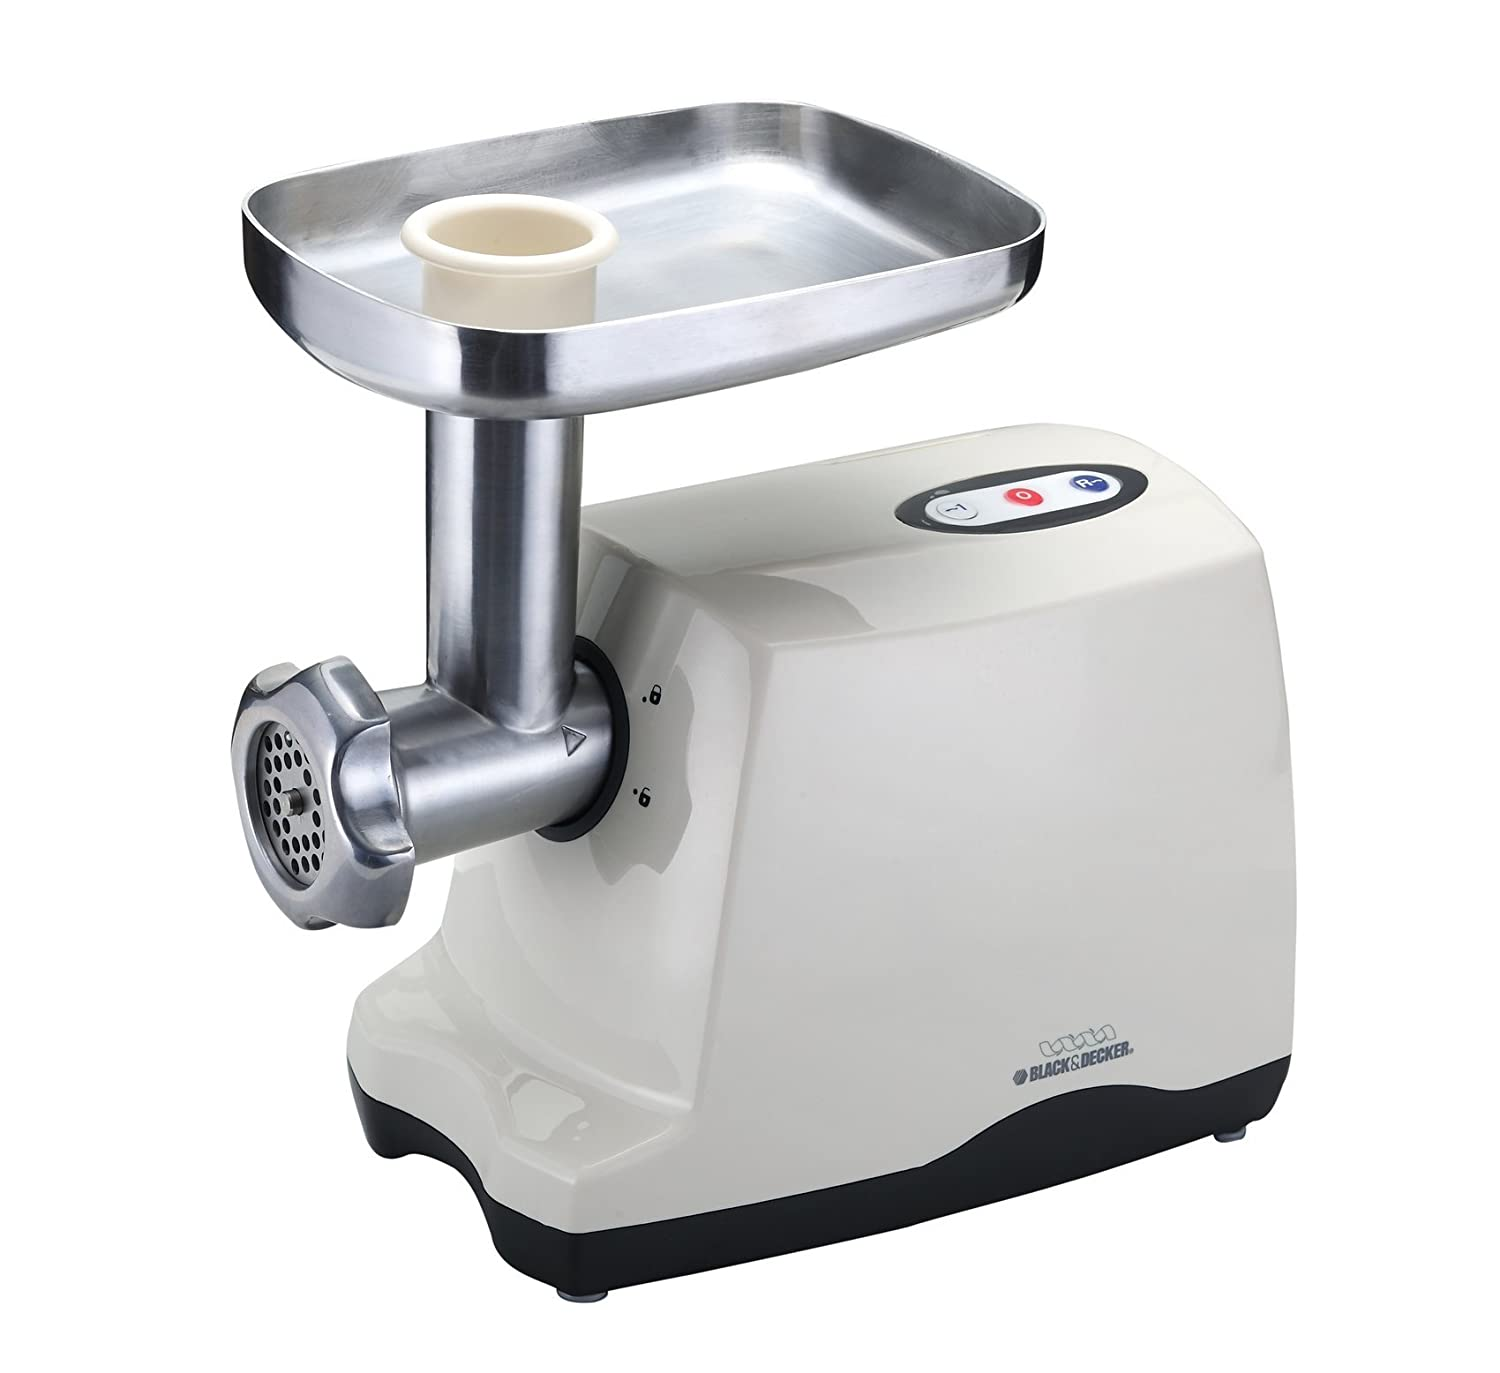 Meat grinder Braun 1300: description, features and opinions of users